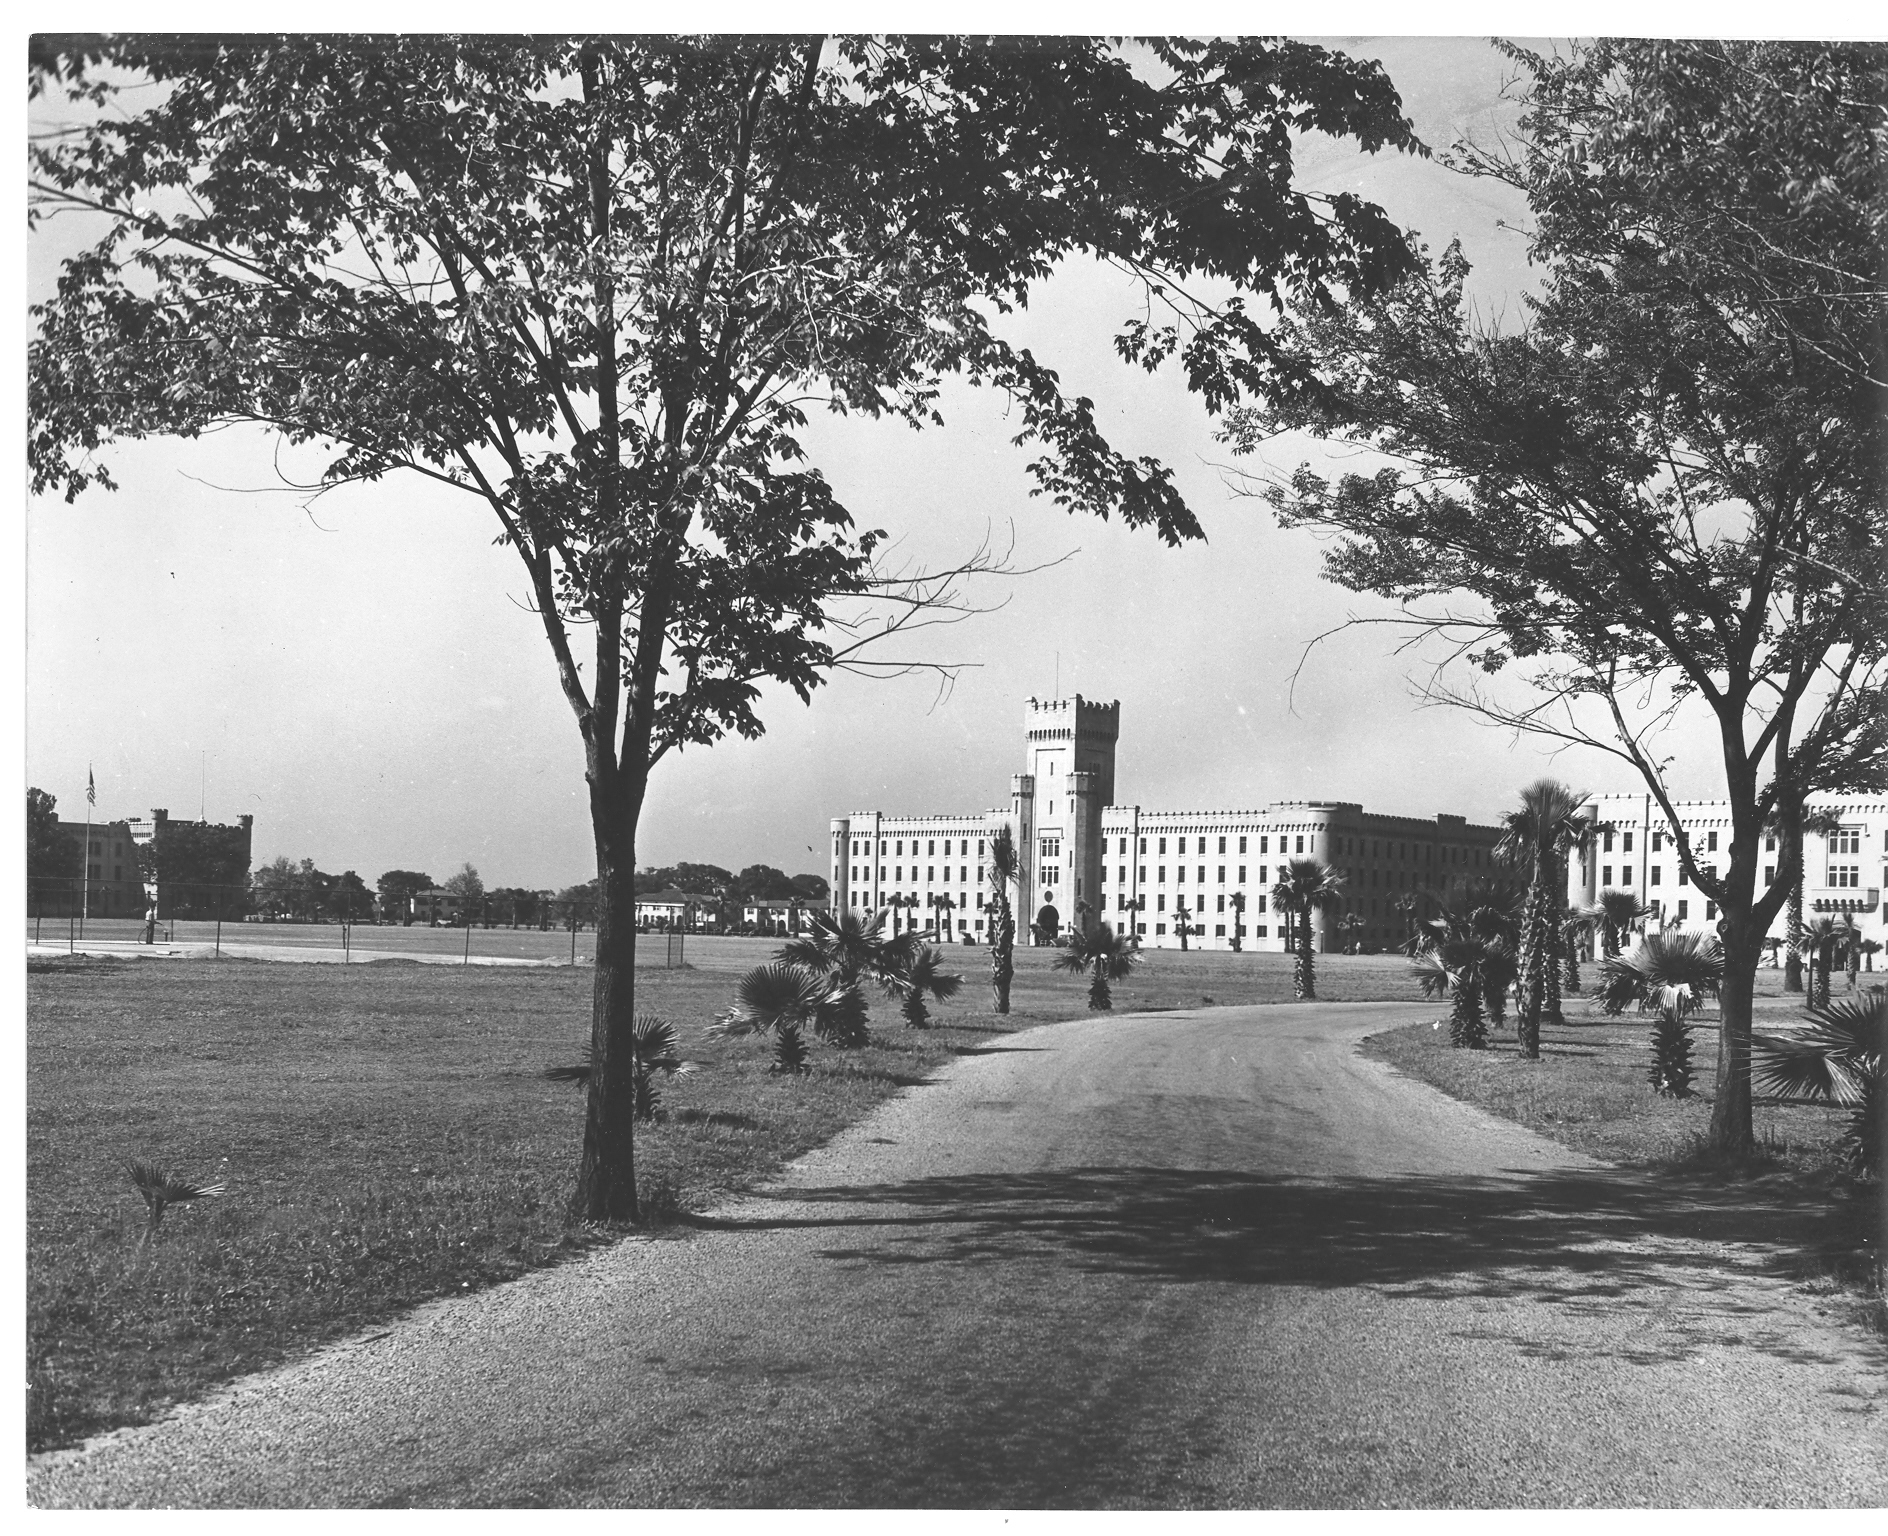 The Citadel's new campus in 1924